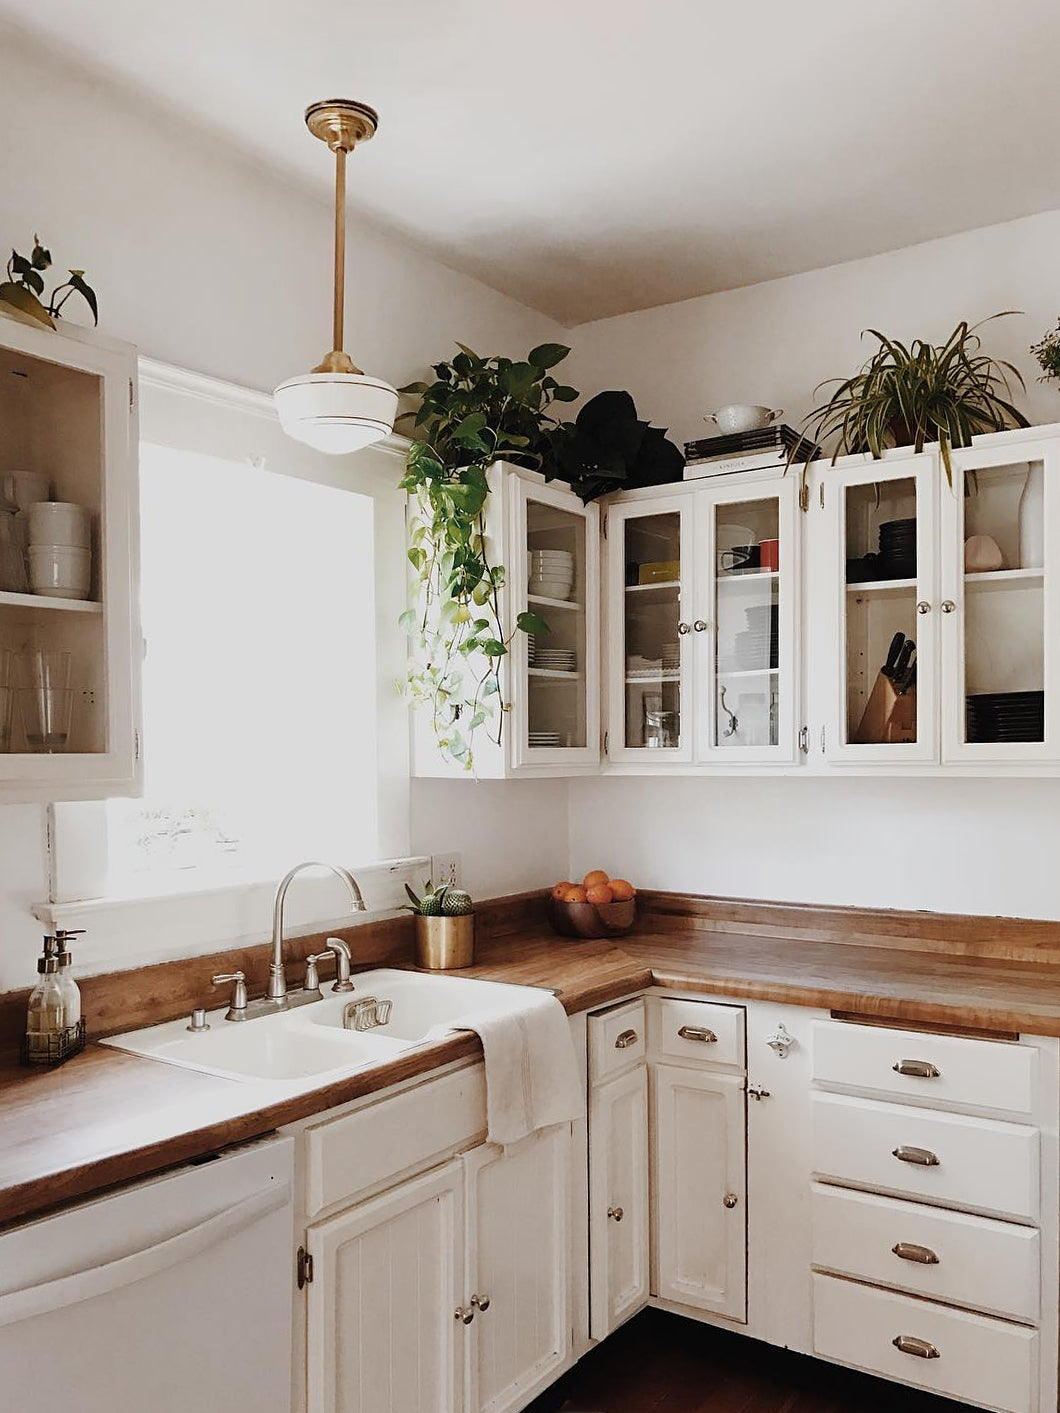 Cabinets Is Actually Prime Real Estate, Decorate Above Your Kitchen Cabinets